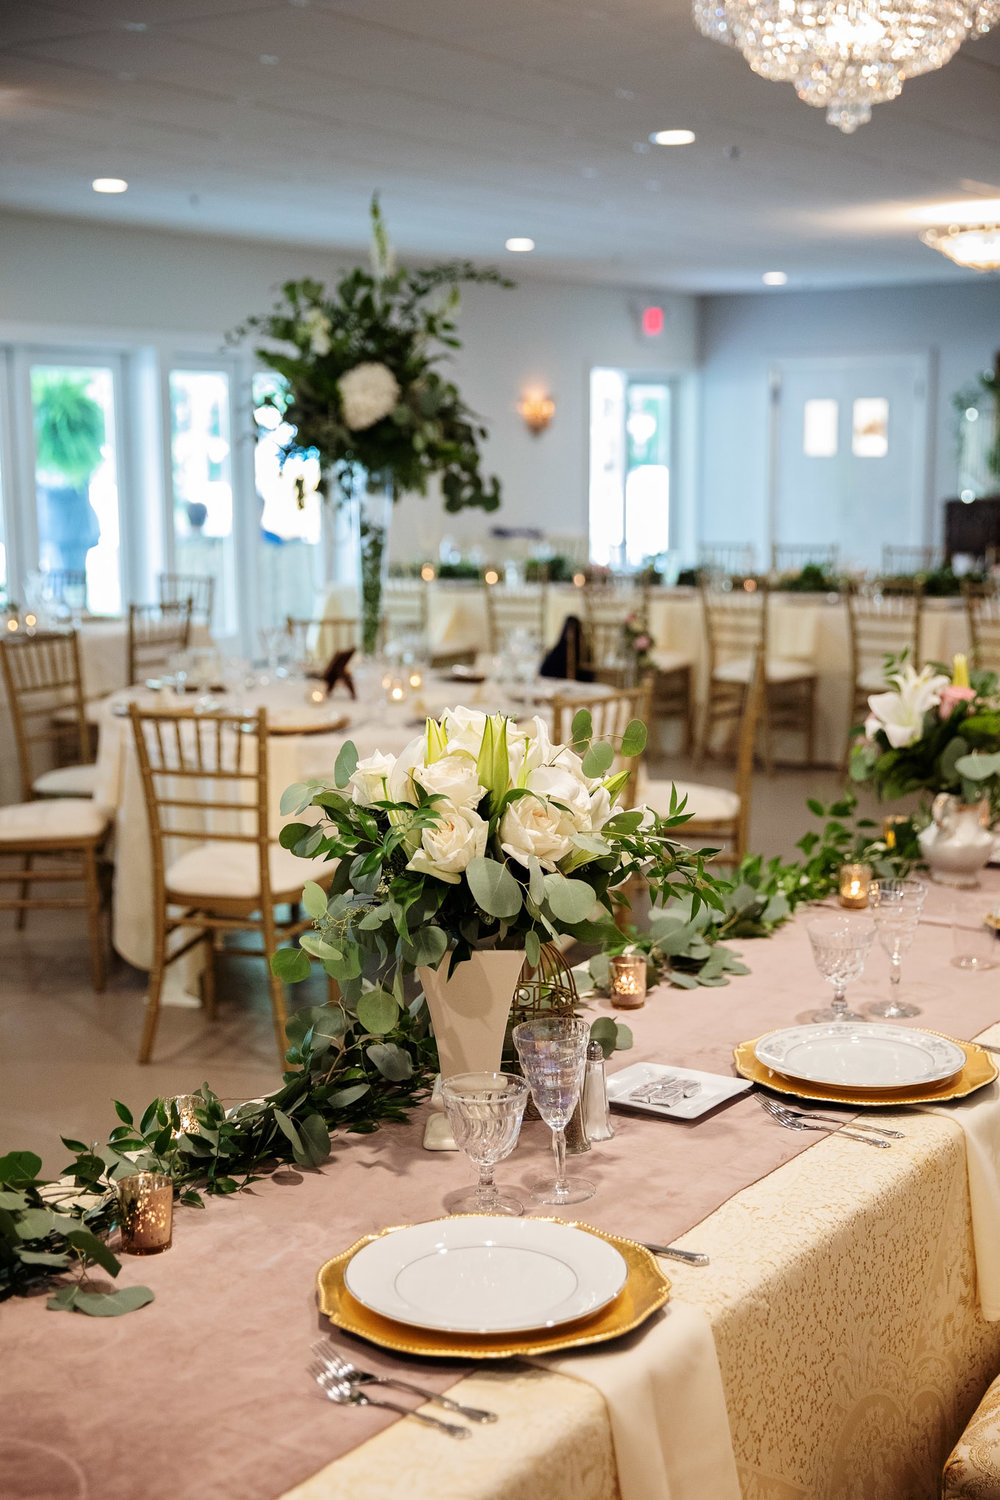 Table decor and reception set up